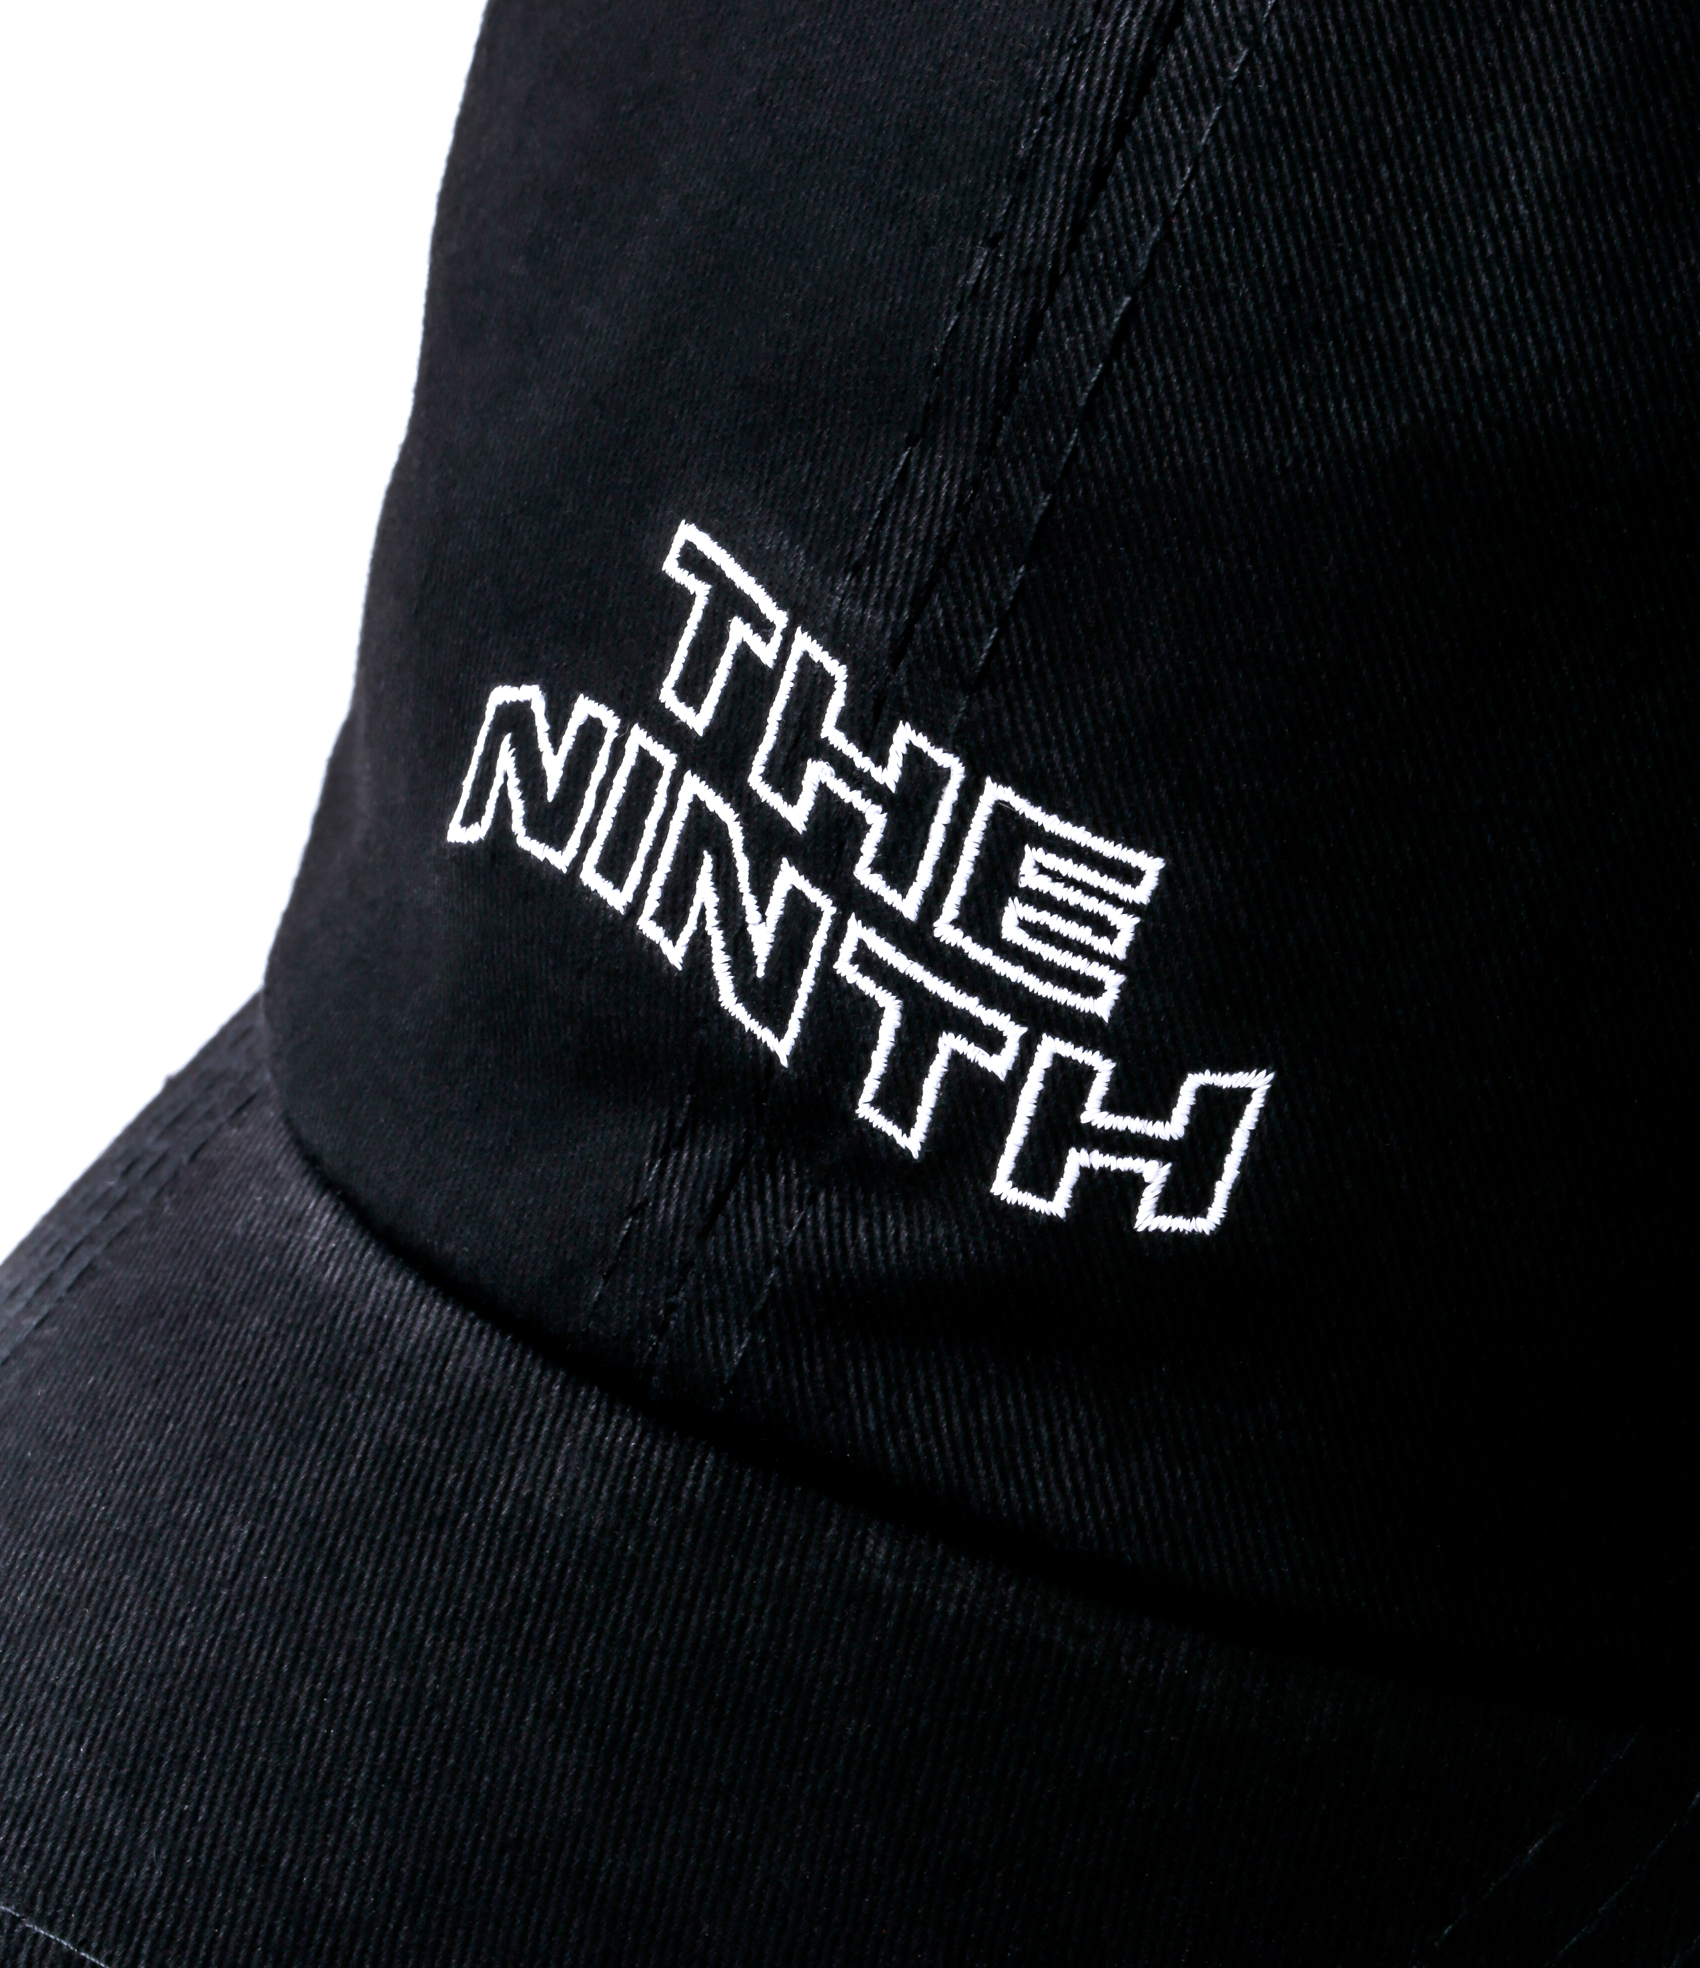 THE NINTH CAP